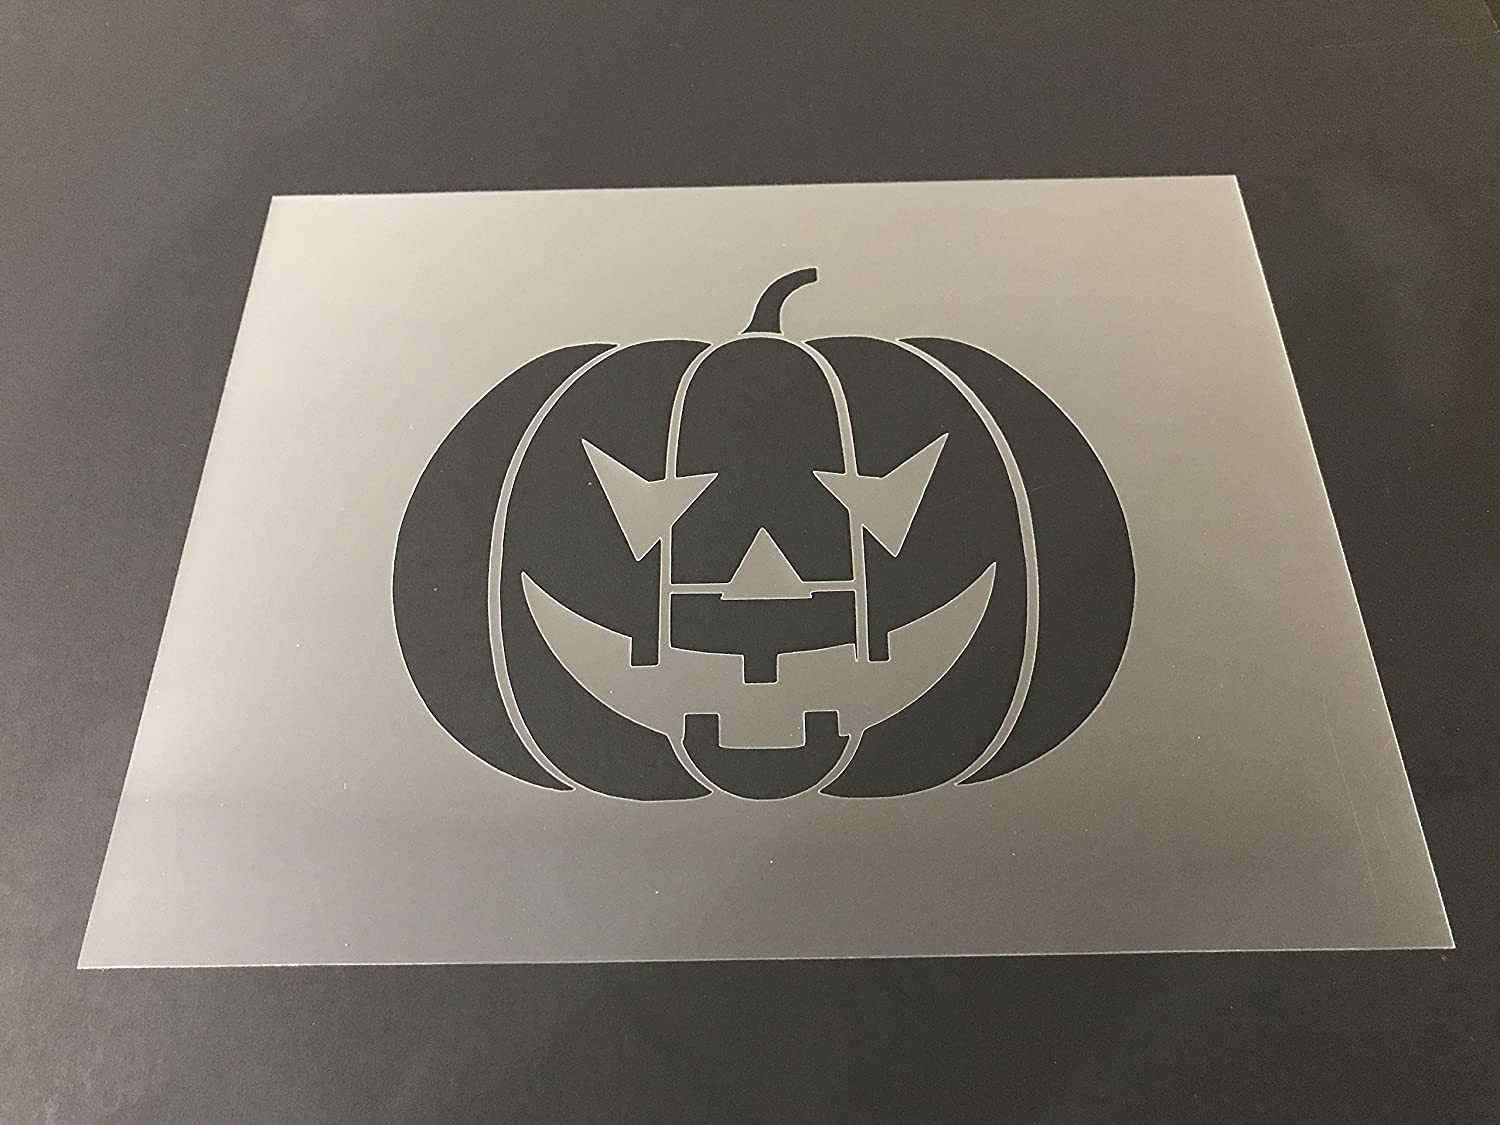 Pumpkin Stencil #2 Reusable 10 mil Thick 7in x 9in sheet